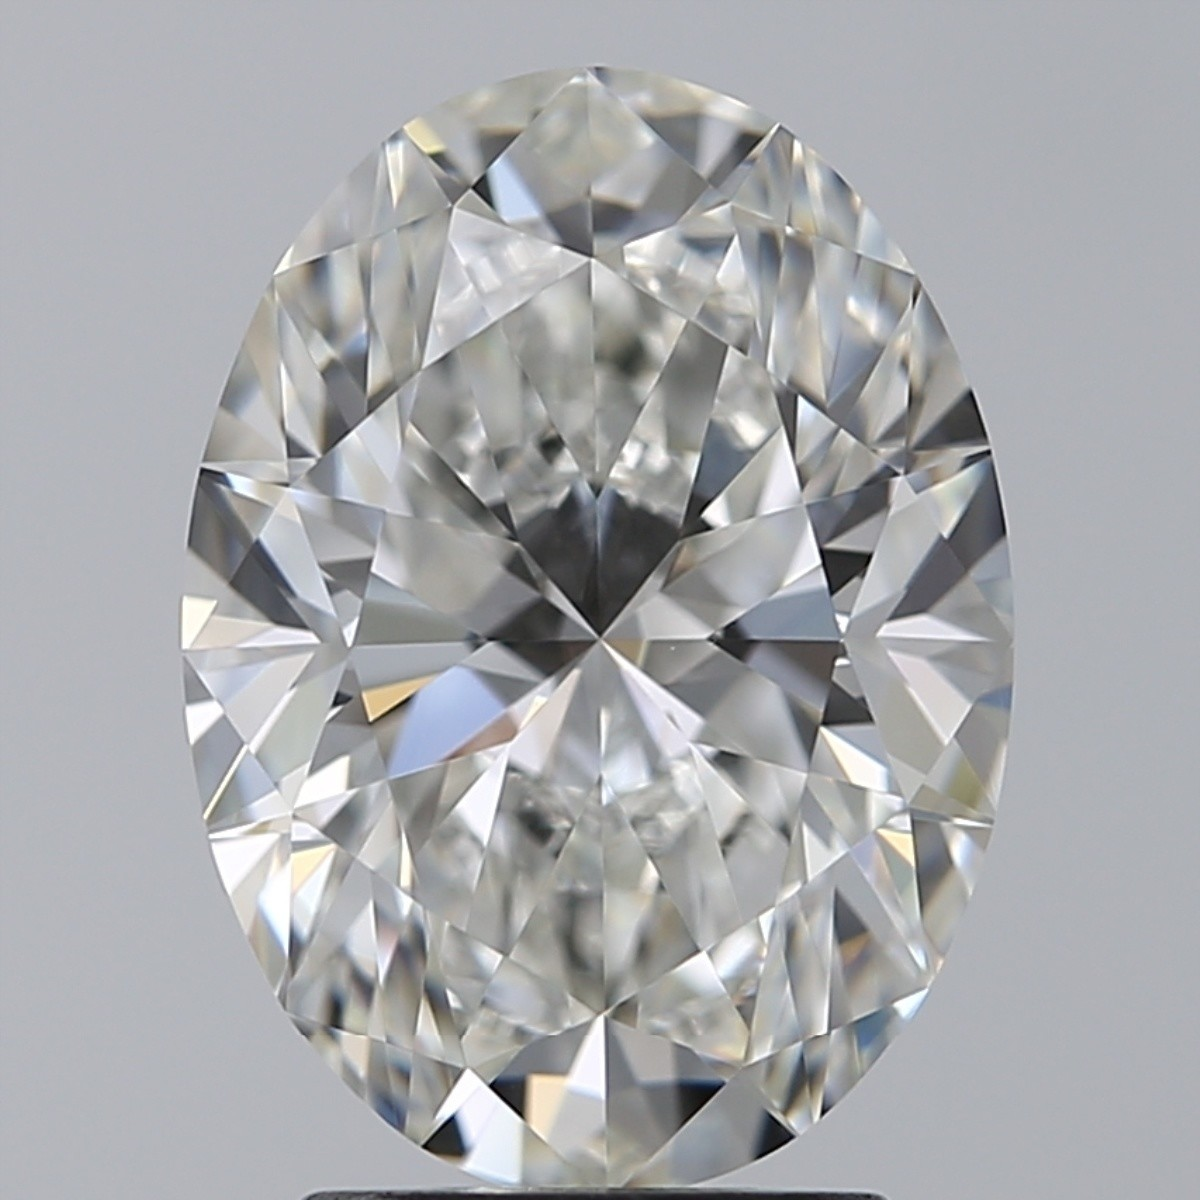 2.53 Carat Oval Diamond (G/VS1)